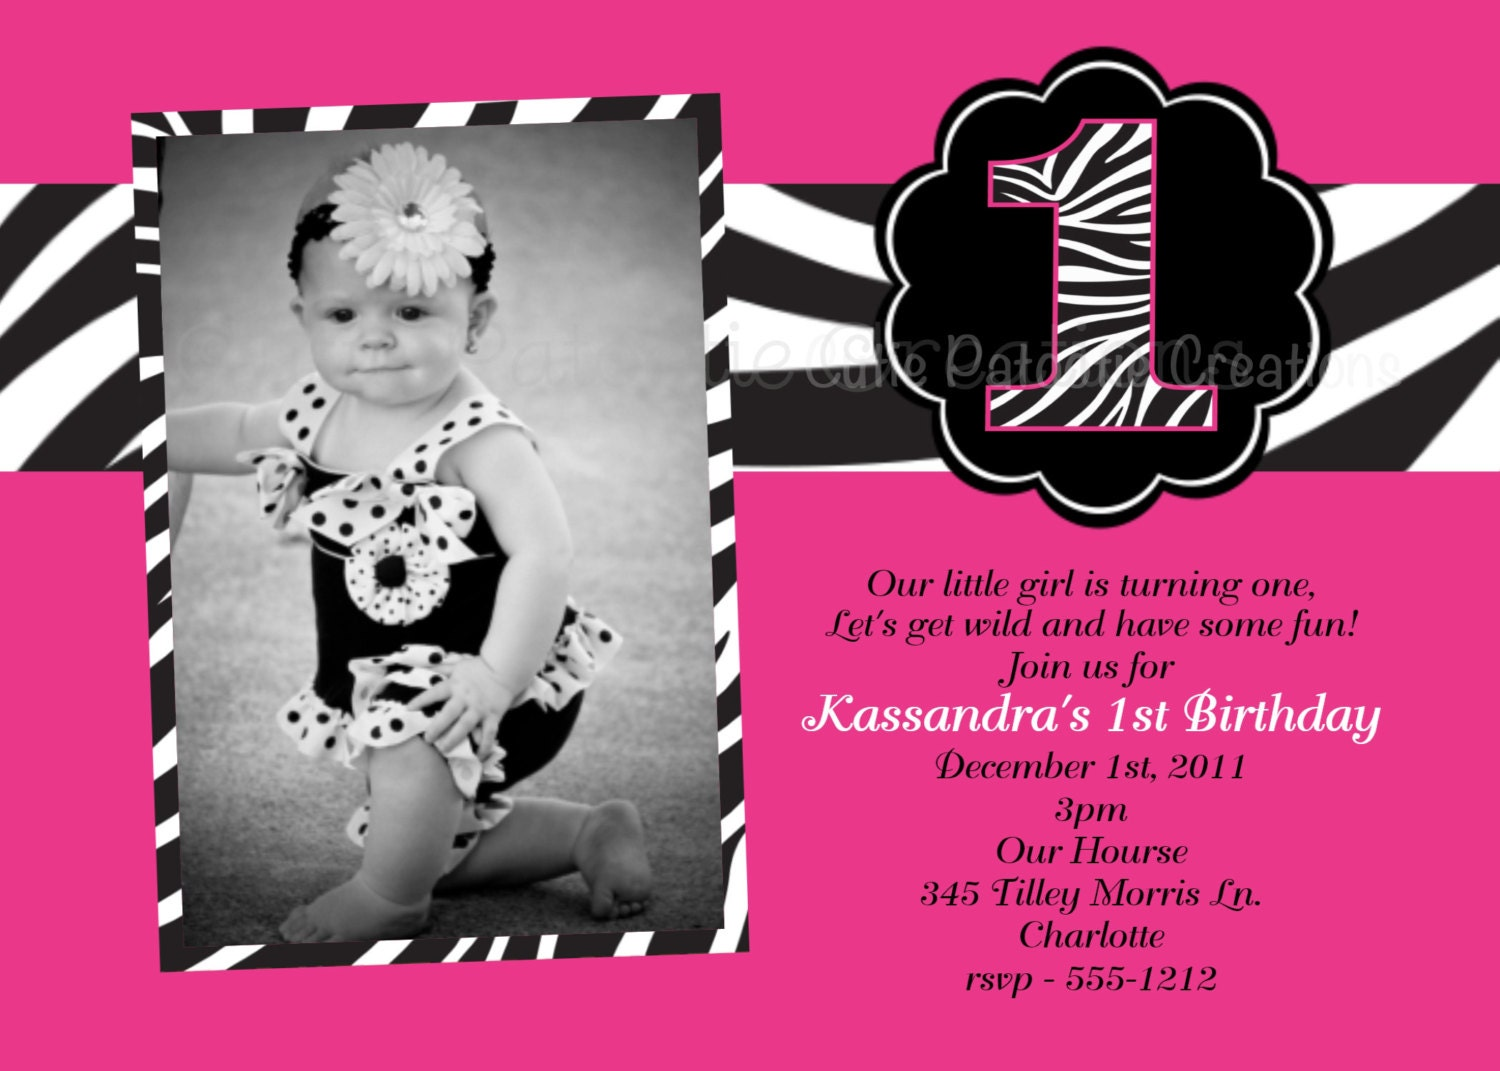 Pink and Black Zebra Print Birthday Party Invitations – Printed Birthday Invitations